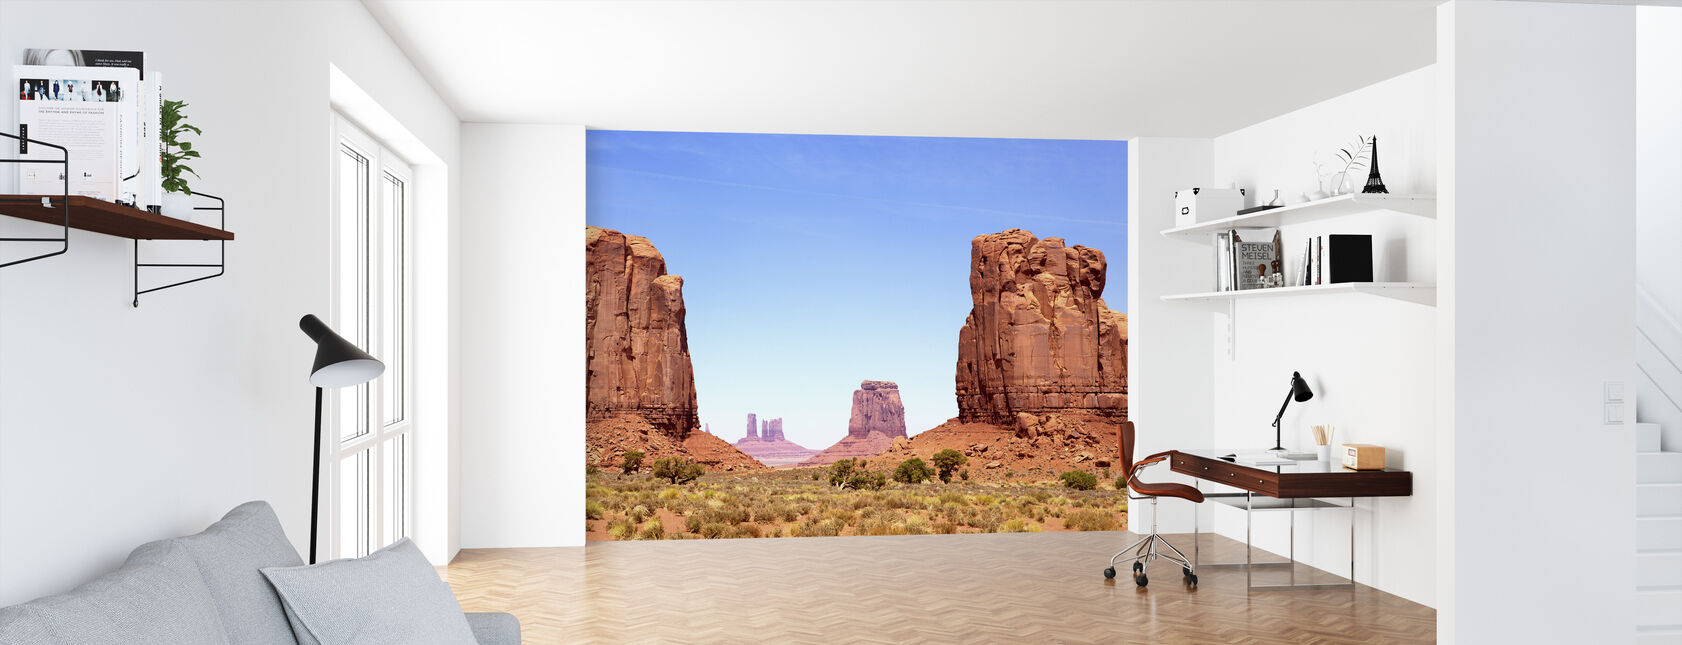 North Window of Monument Valley - Wallpaper - Office